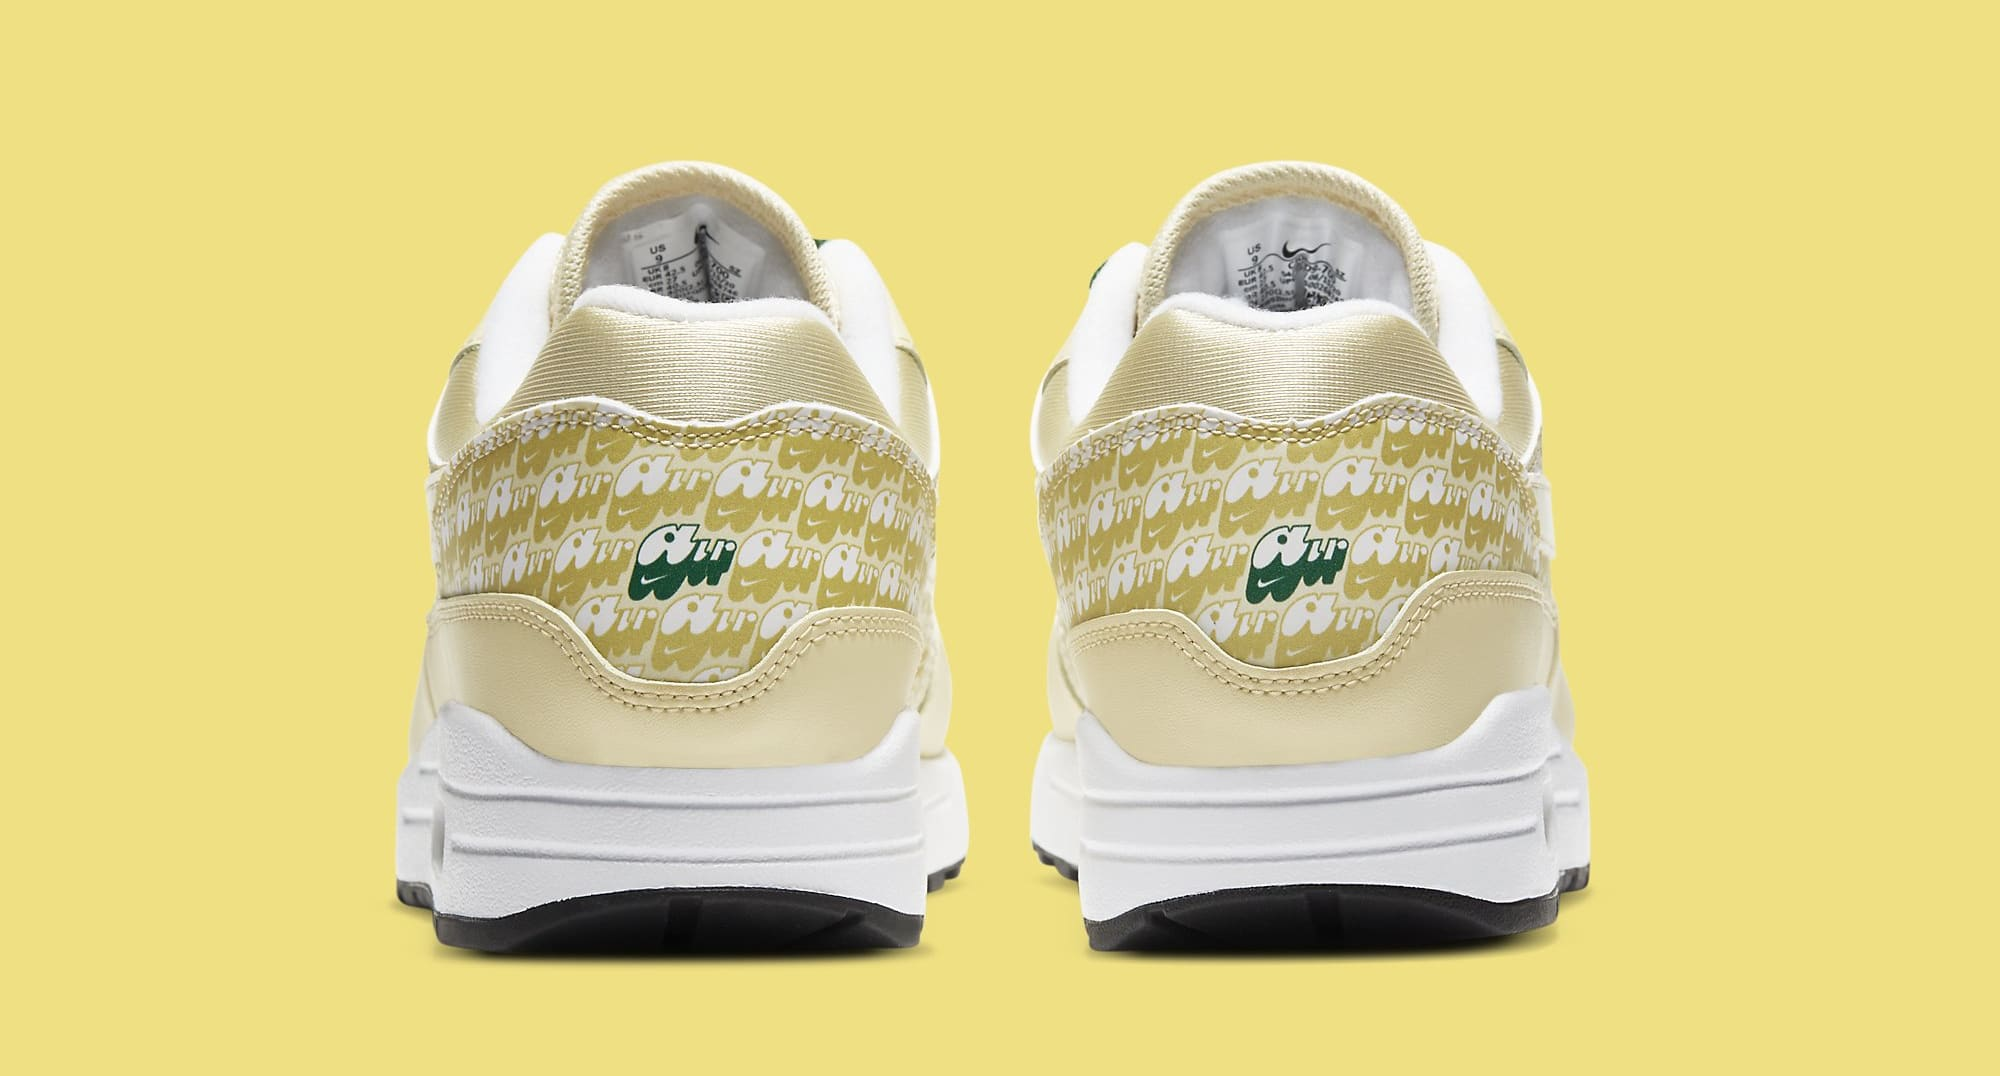 Nike Air Max 1 'Lemonade' CJ0609-700 Heel